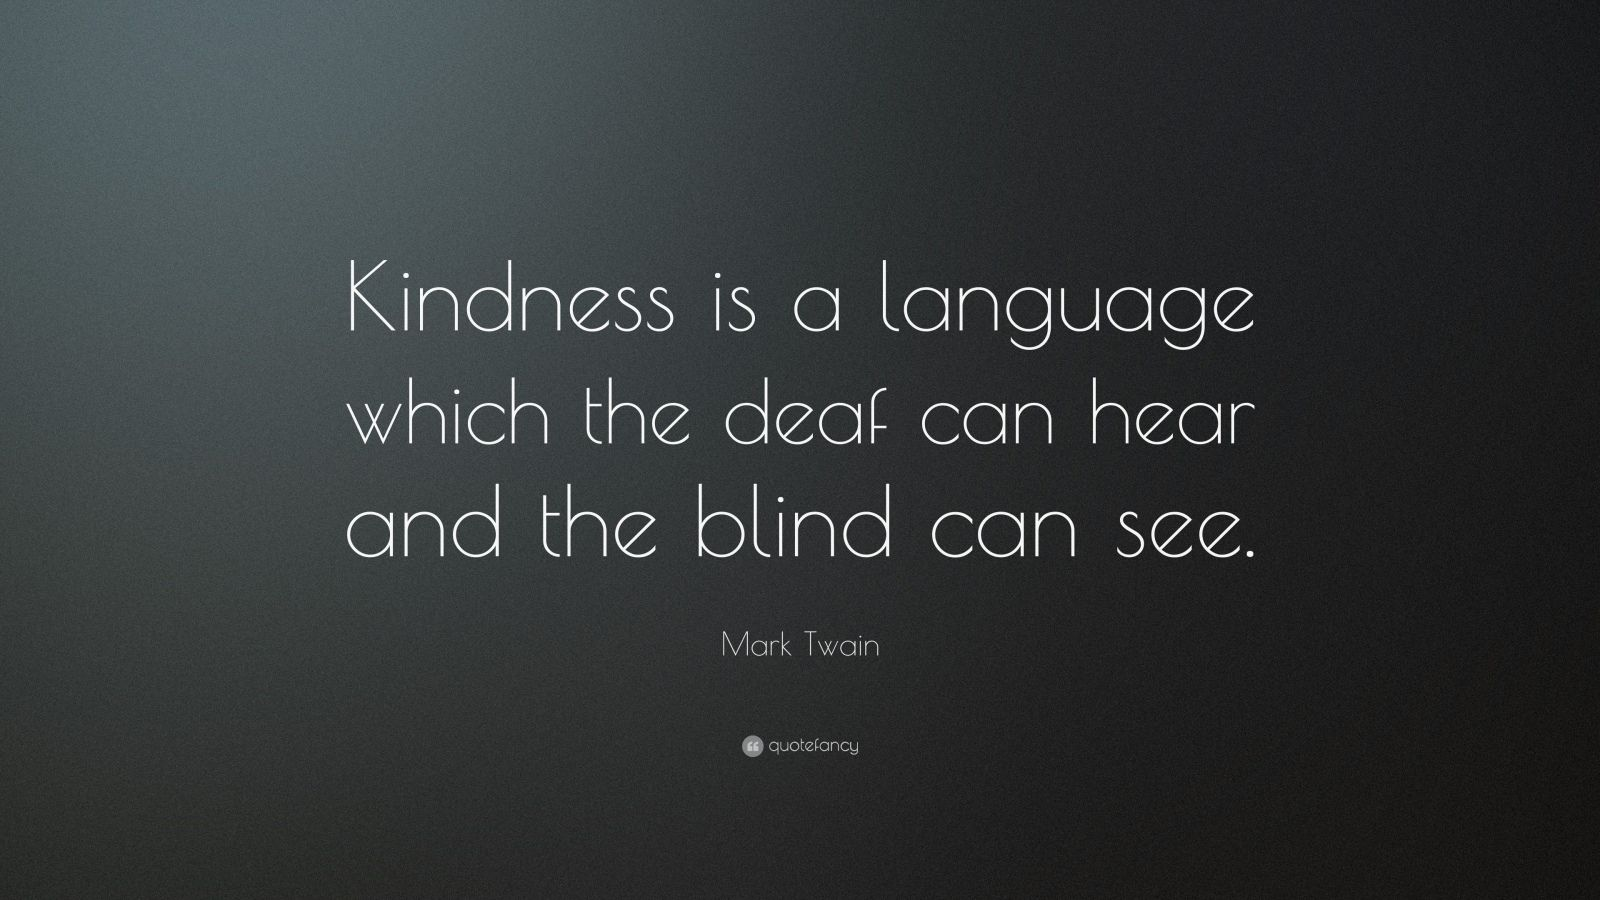 Kindness Is a Language Mark Twain Quotes